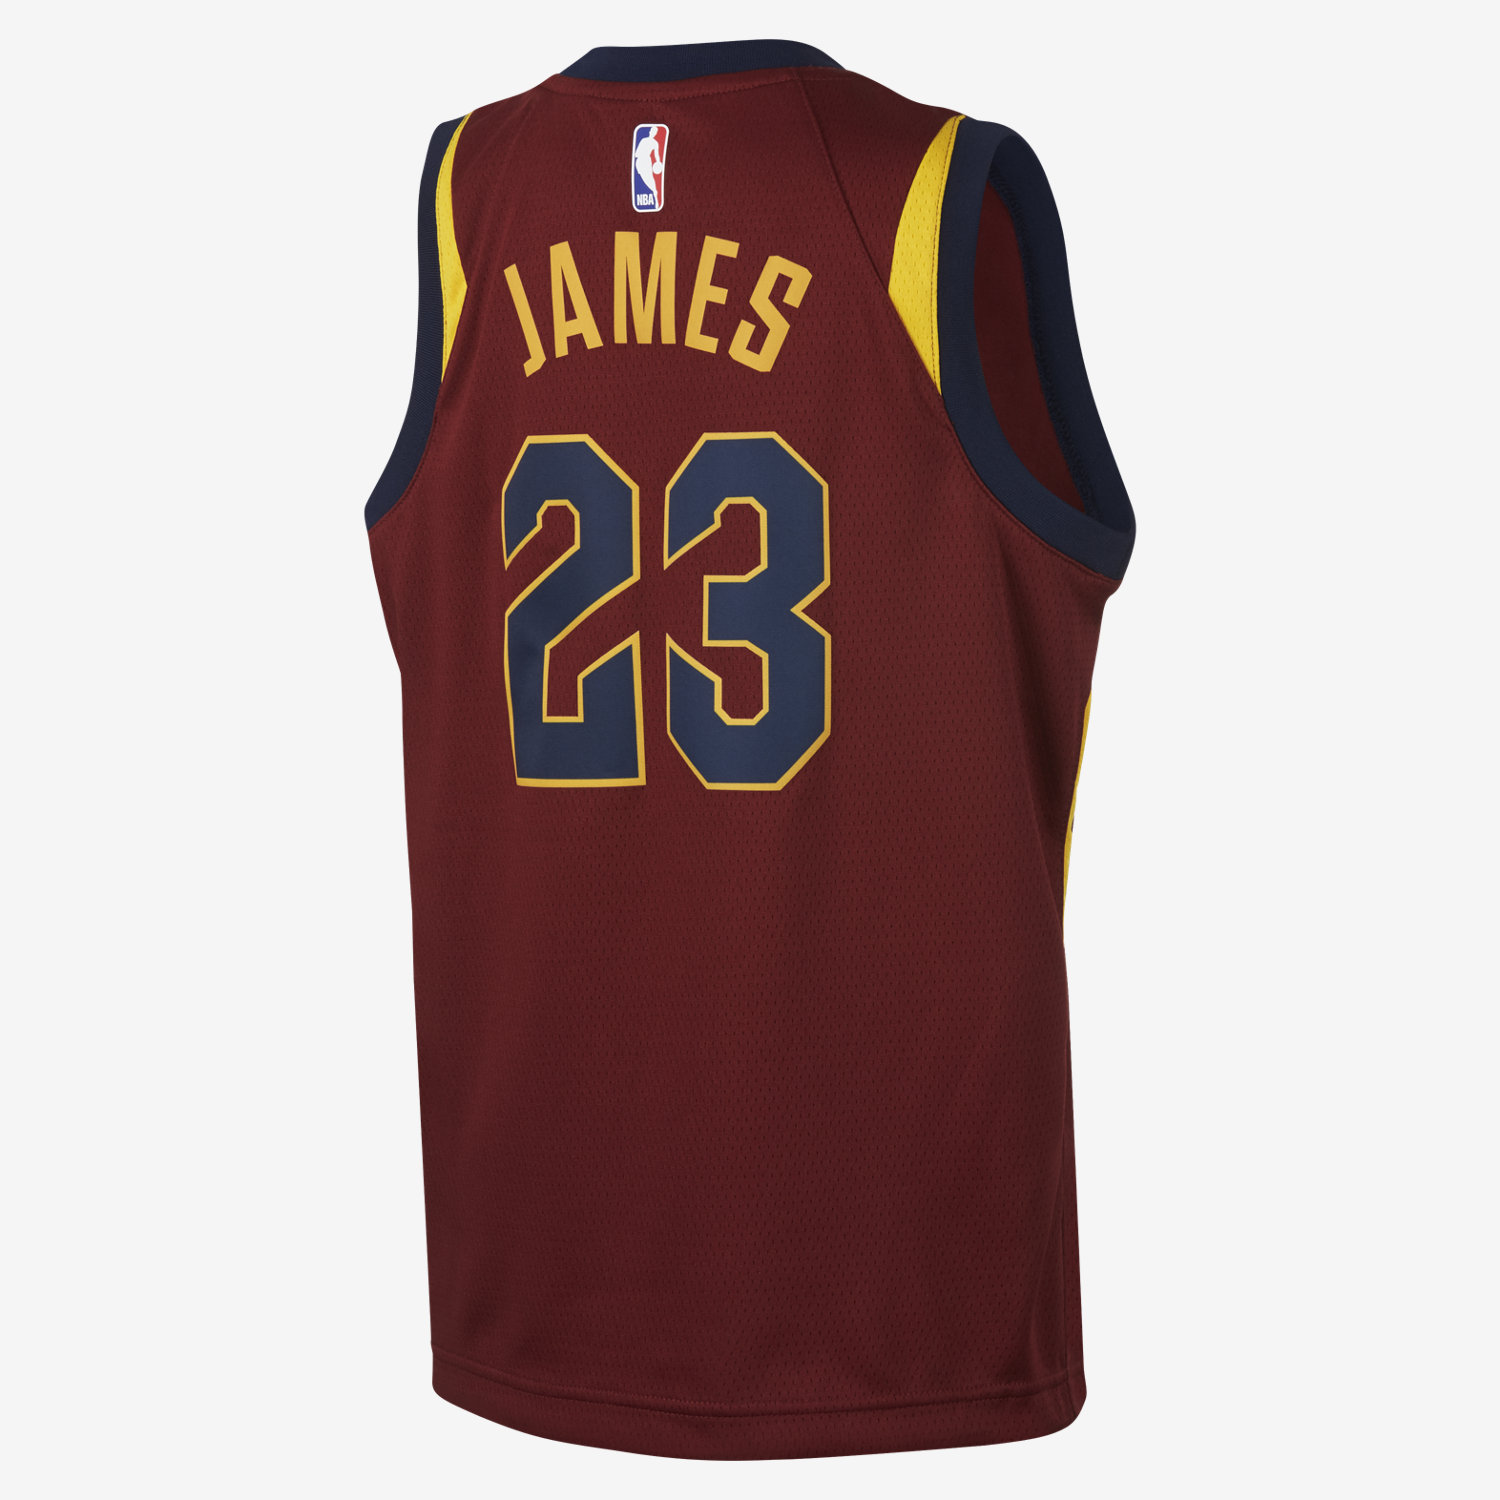 Cavs black t shirt jersey - Lebron James Cleveland Cavaliers Nike Icon Edition Swingman Older Kids Nba Jersey Nike Com Dk